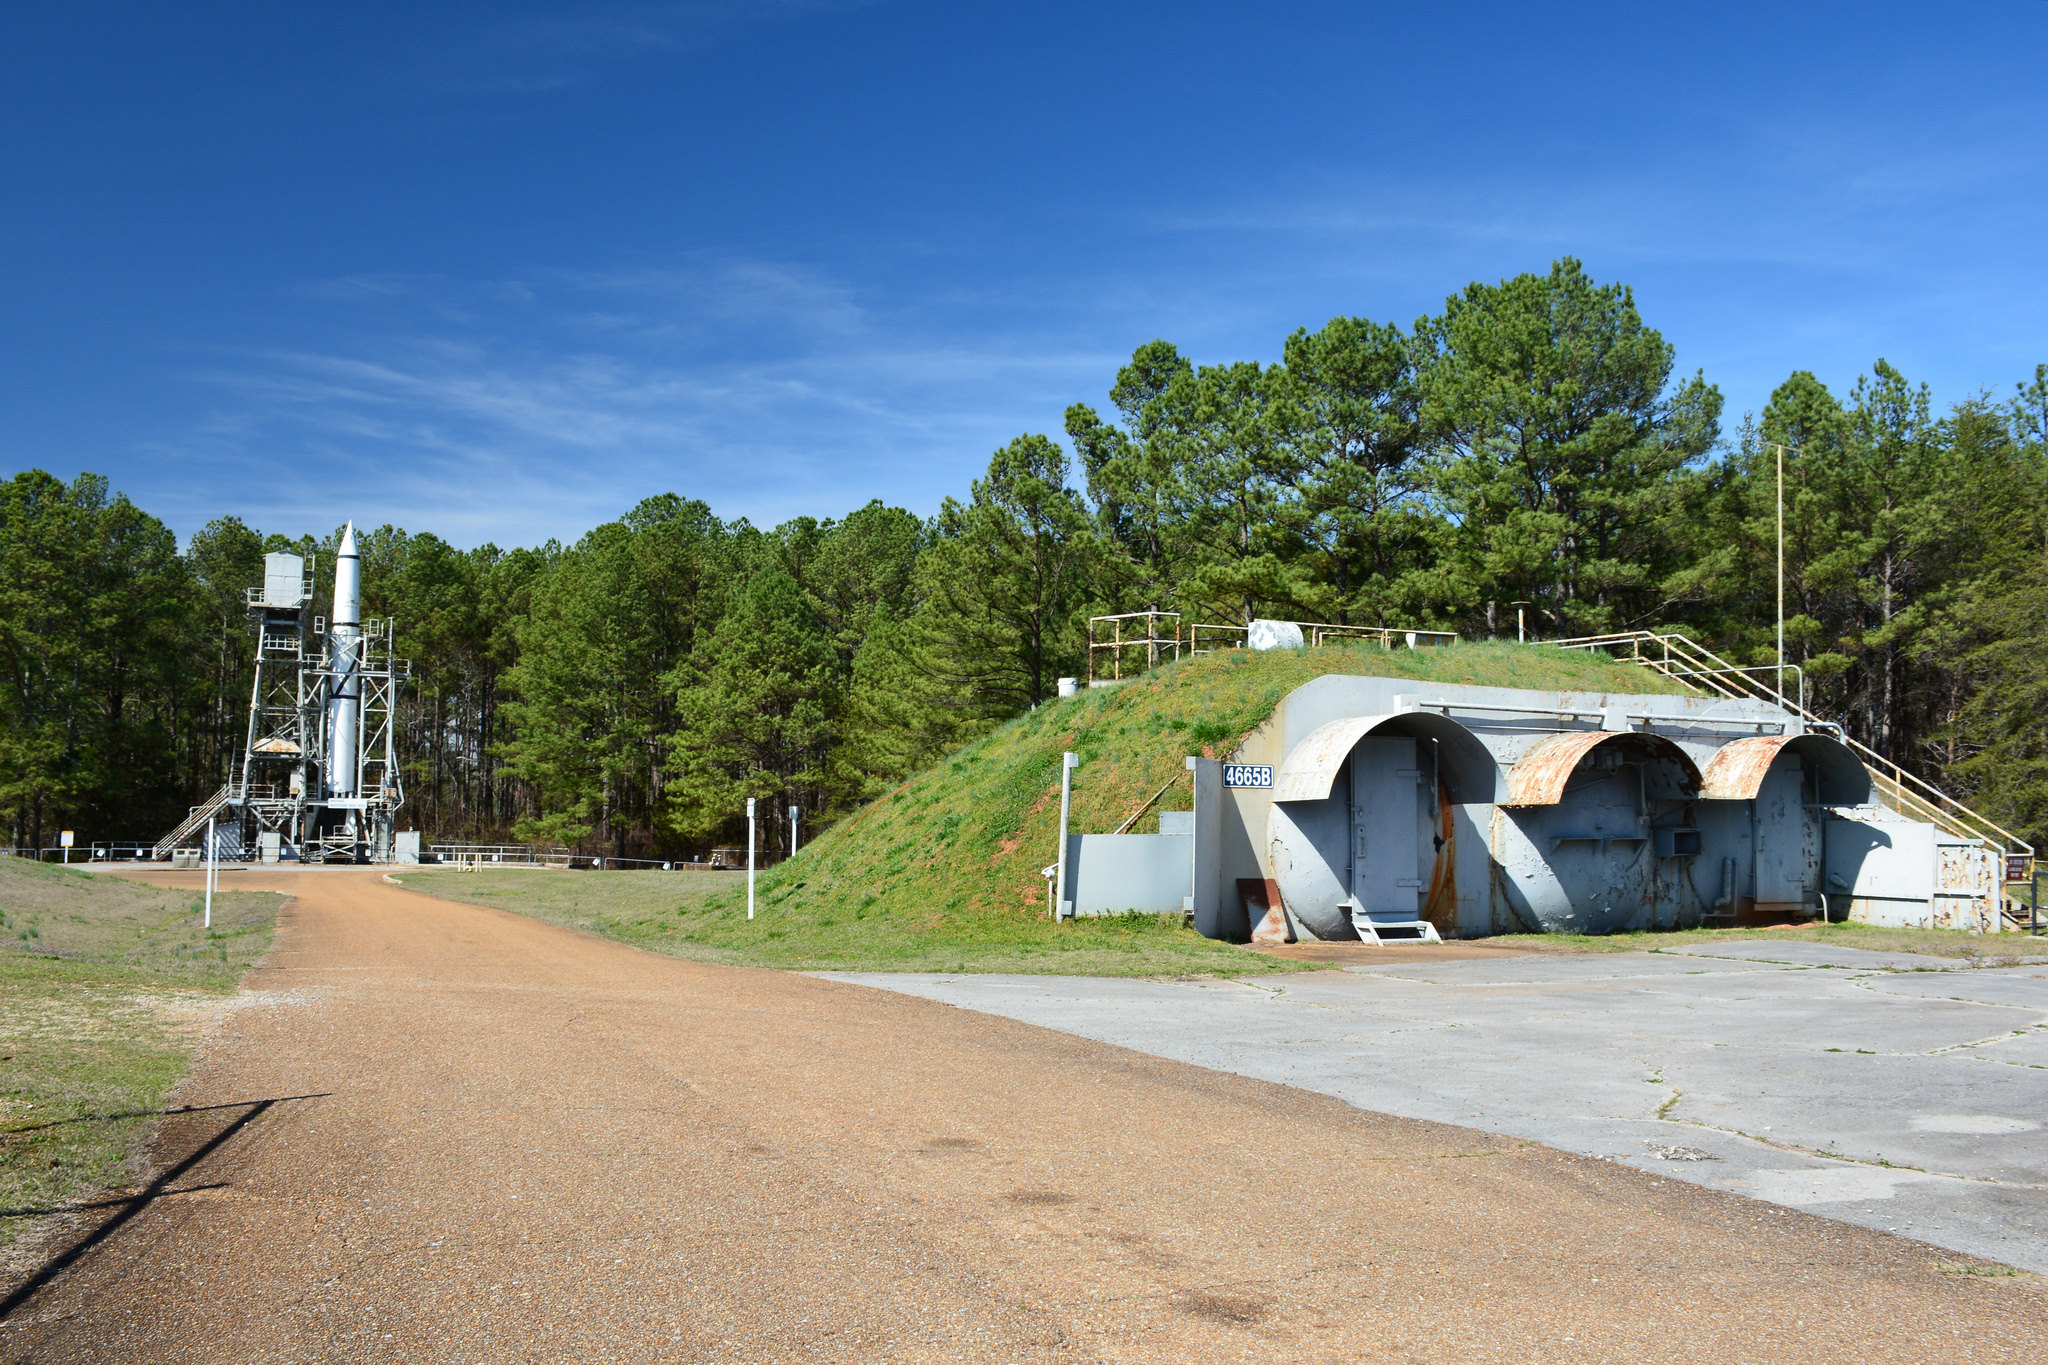 With the addition of the energy storage system, the project is expected to bolster energy security and resilience at Redstone Arsenal while also helping the base become more energy independent. Image: Whitney Gal / Flickr